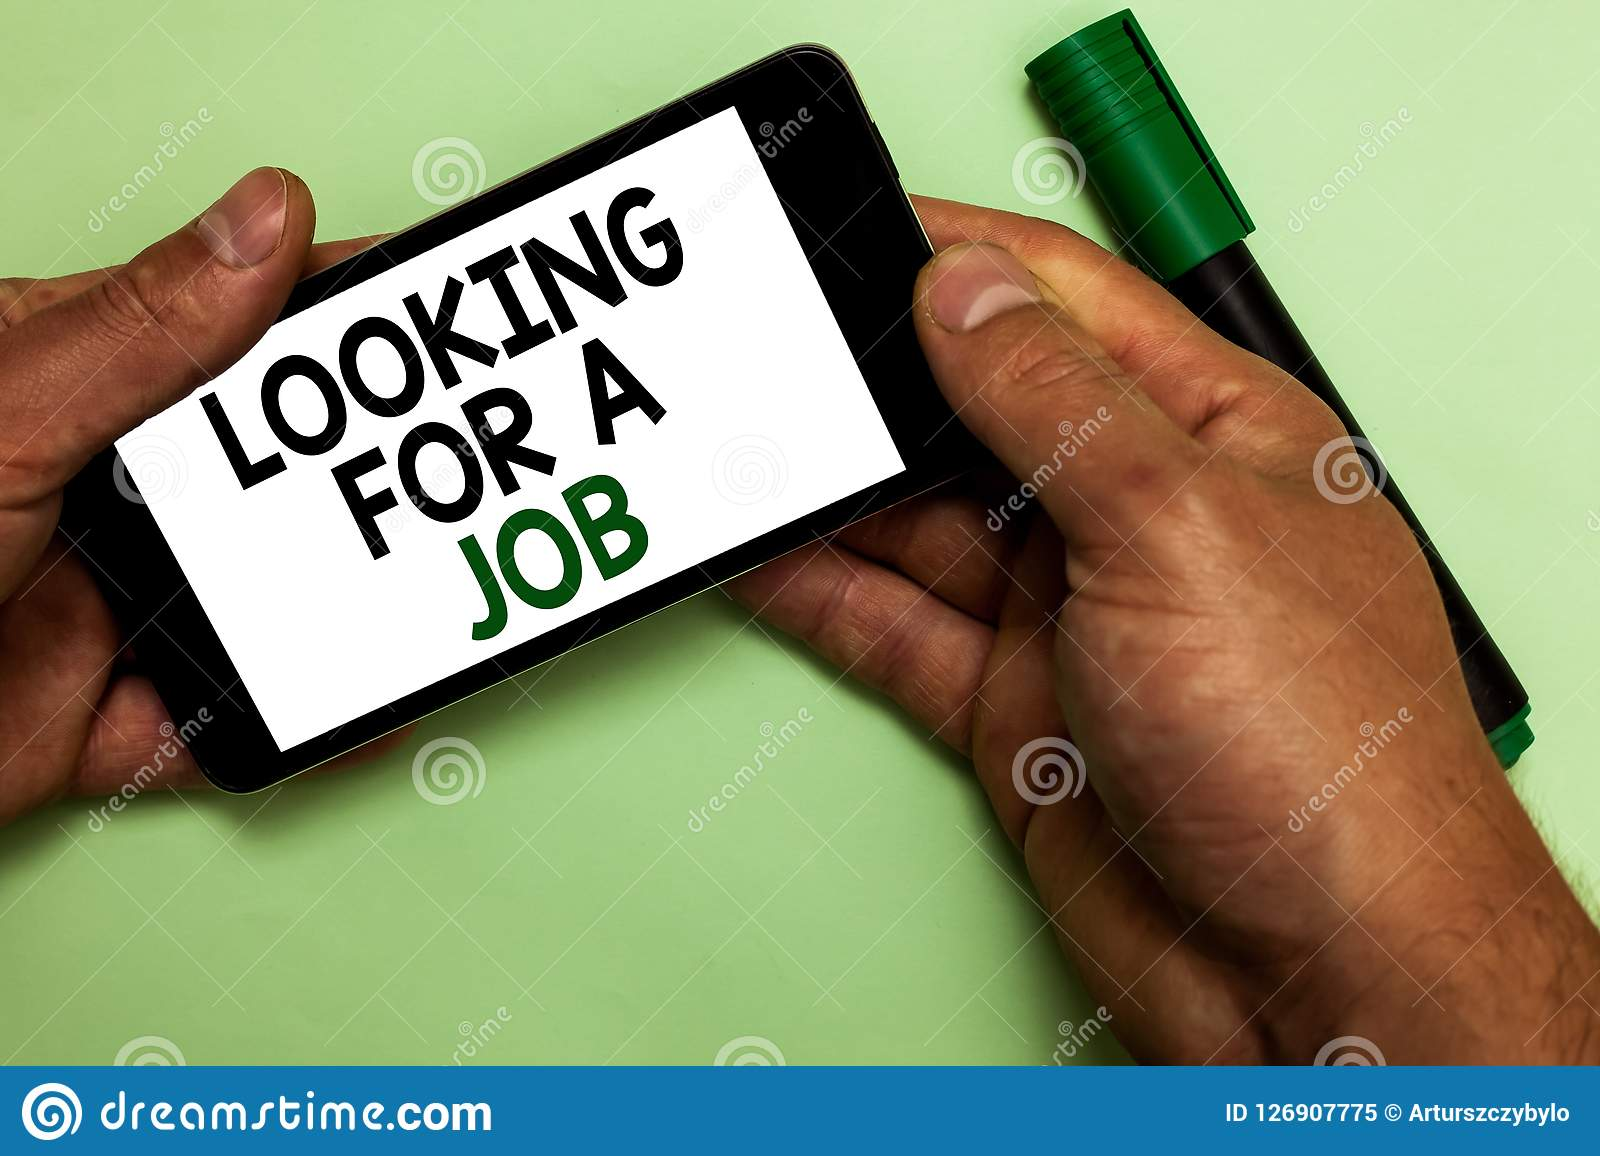 Writing Note Showing Looking For A Job Business Photo Showcasing Unemployed Seeking Work Recruitment Human